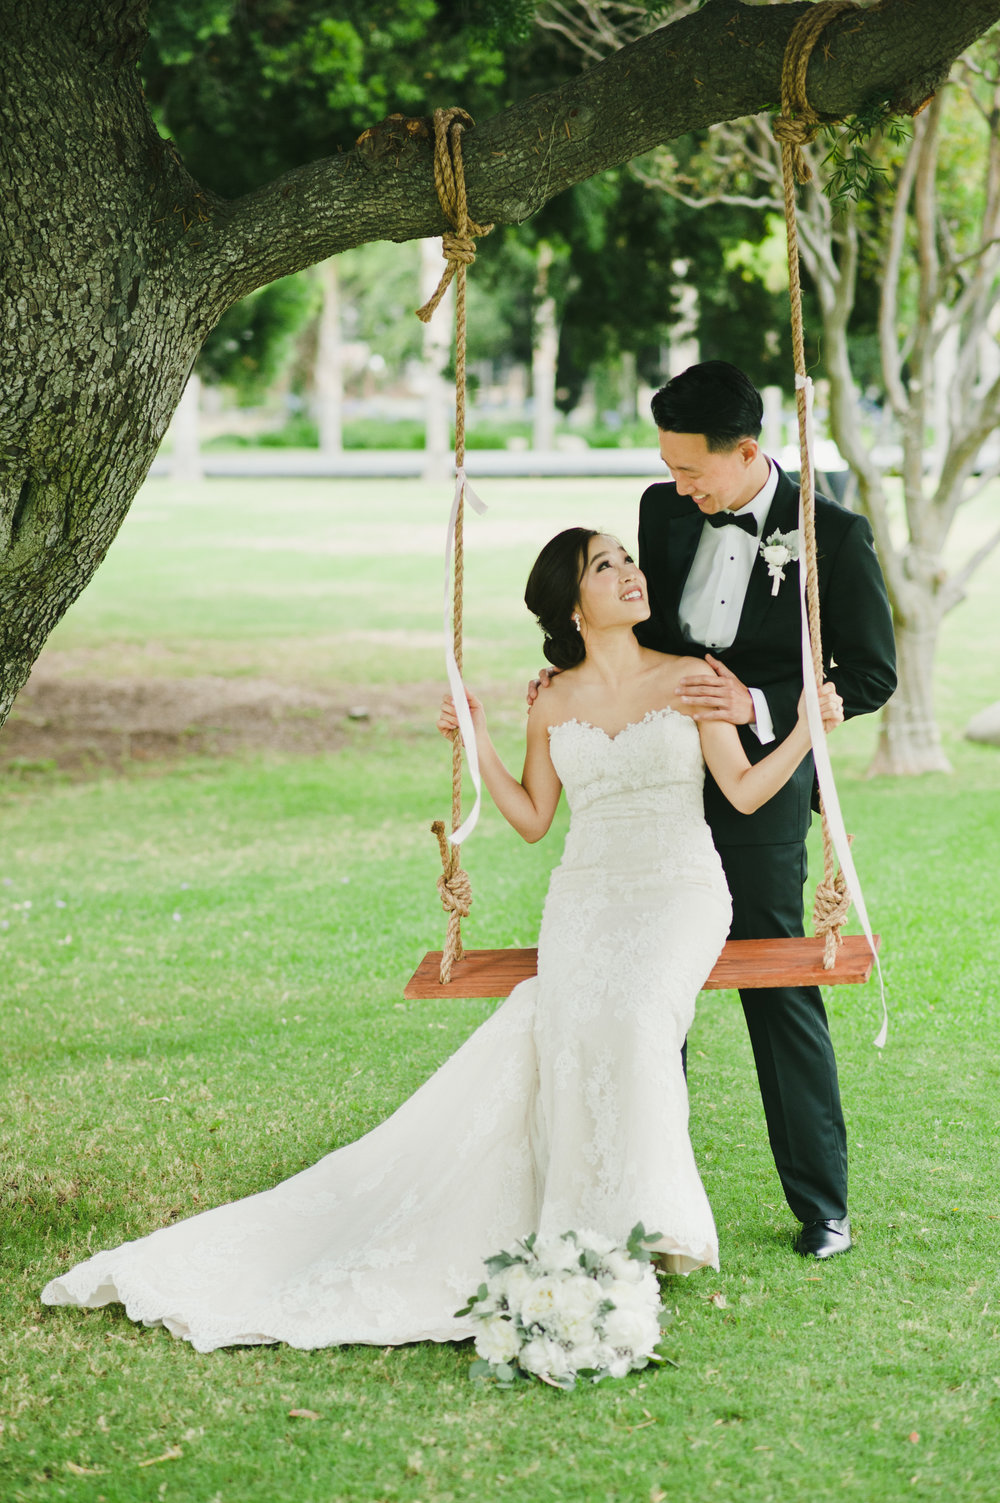 RACHEL+SUNG - GRACE MINISTRIES